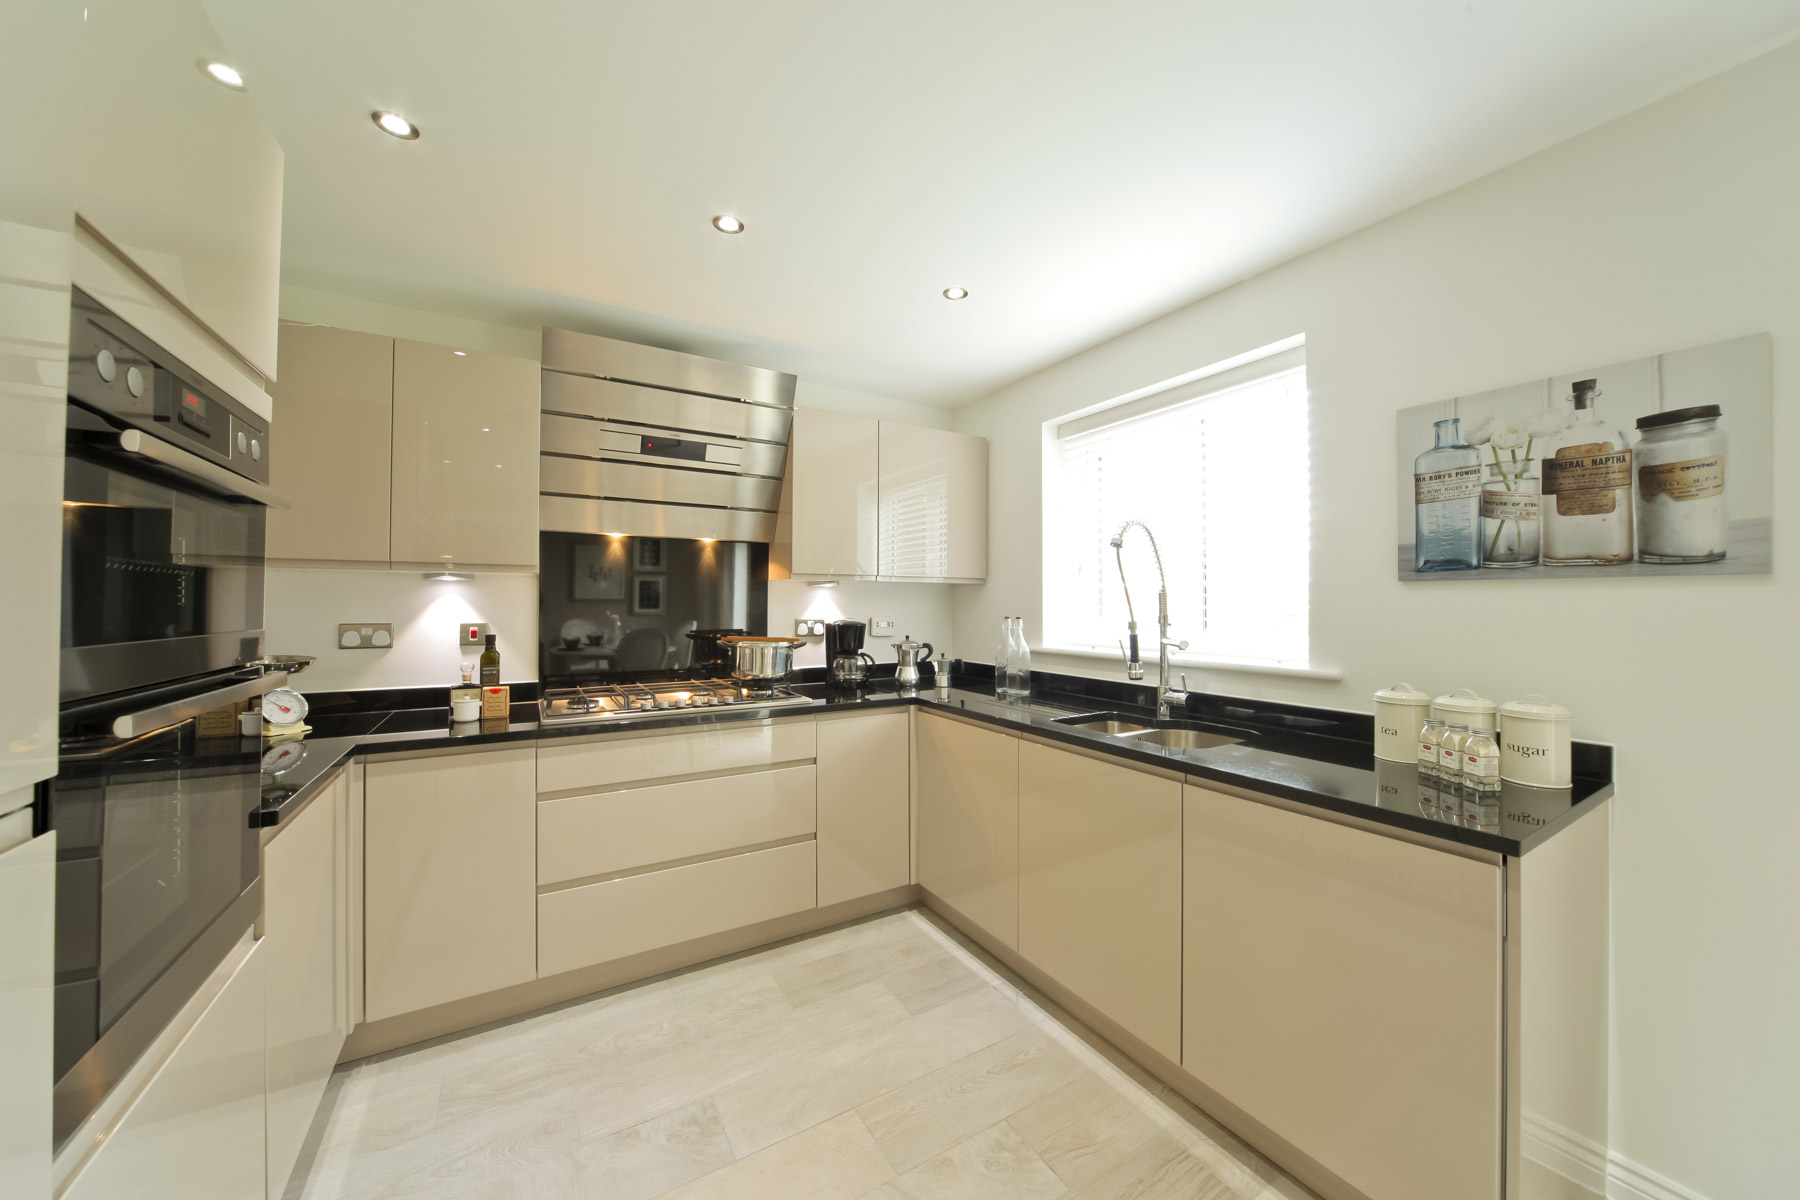 007_OM_Eynsham_Kitchen